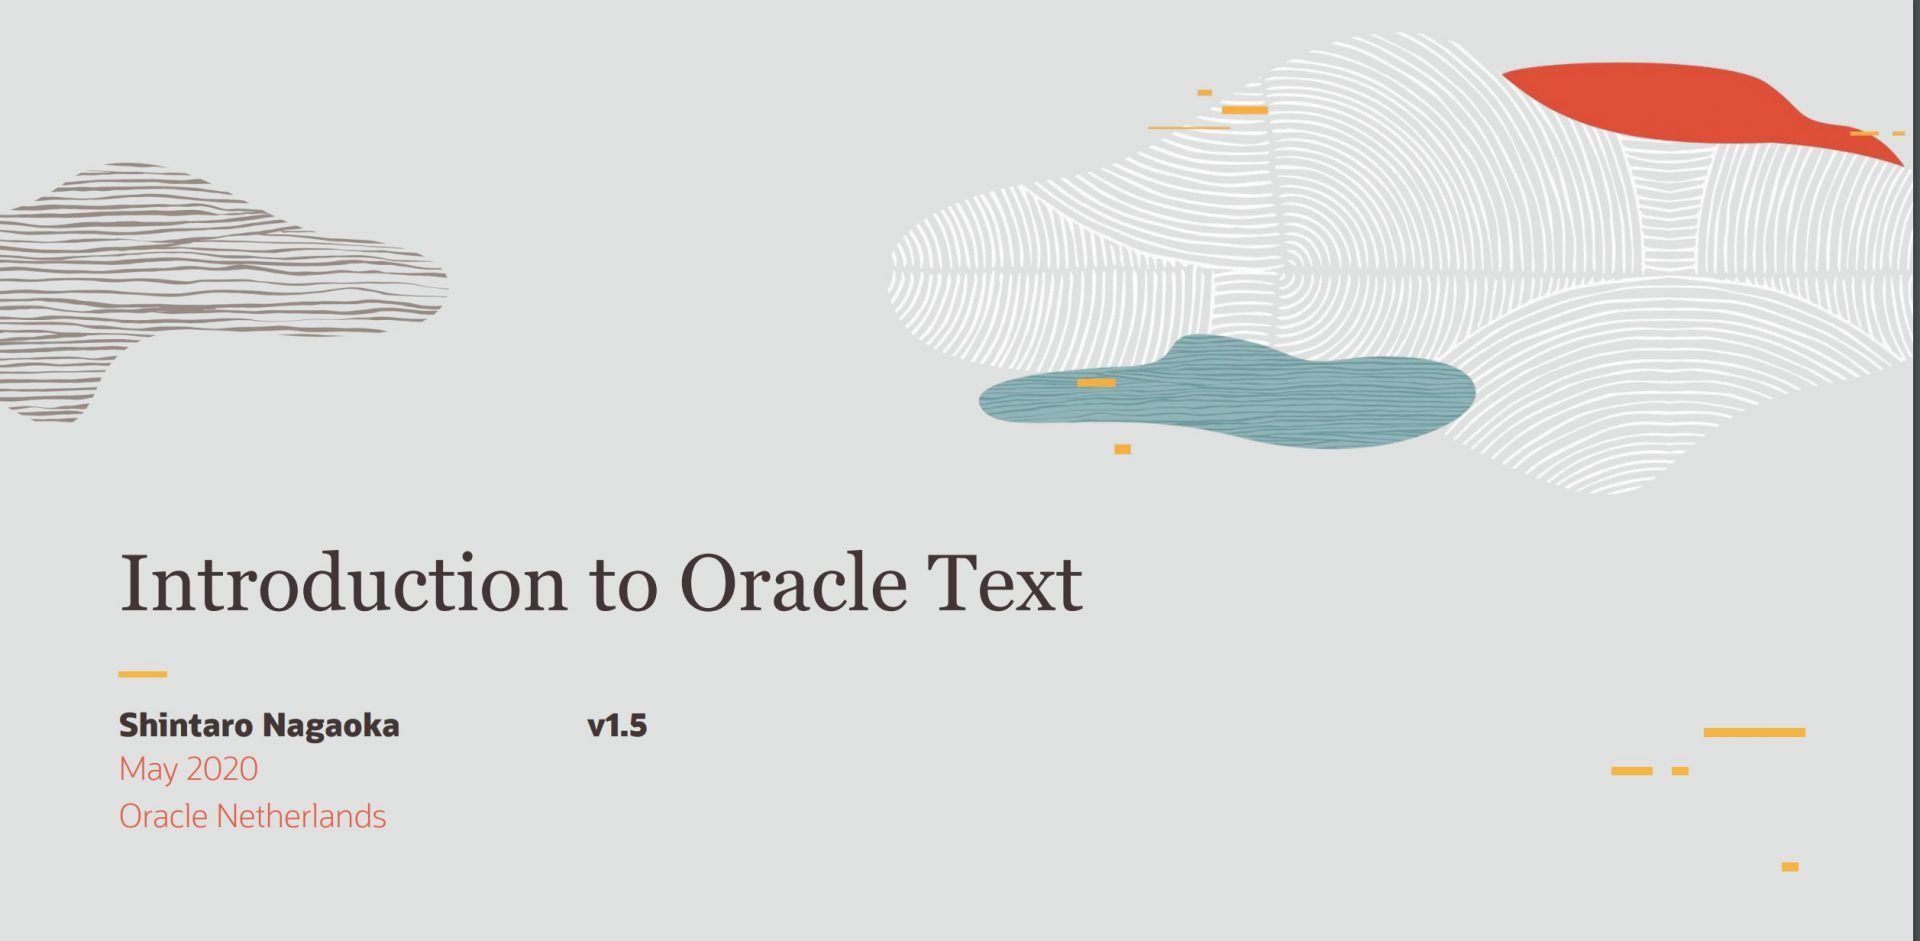 Meetup 26 mei 2020 : Shintaro Nagaoka – Met Oracle Text zoeken en analyseren in teksten en documenten